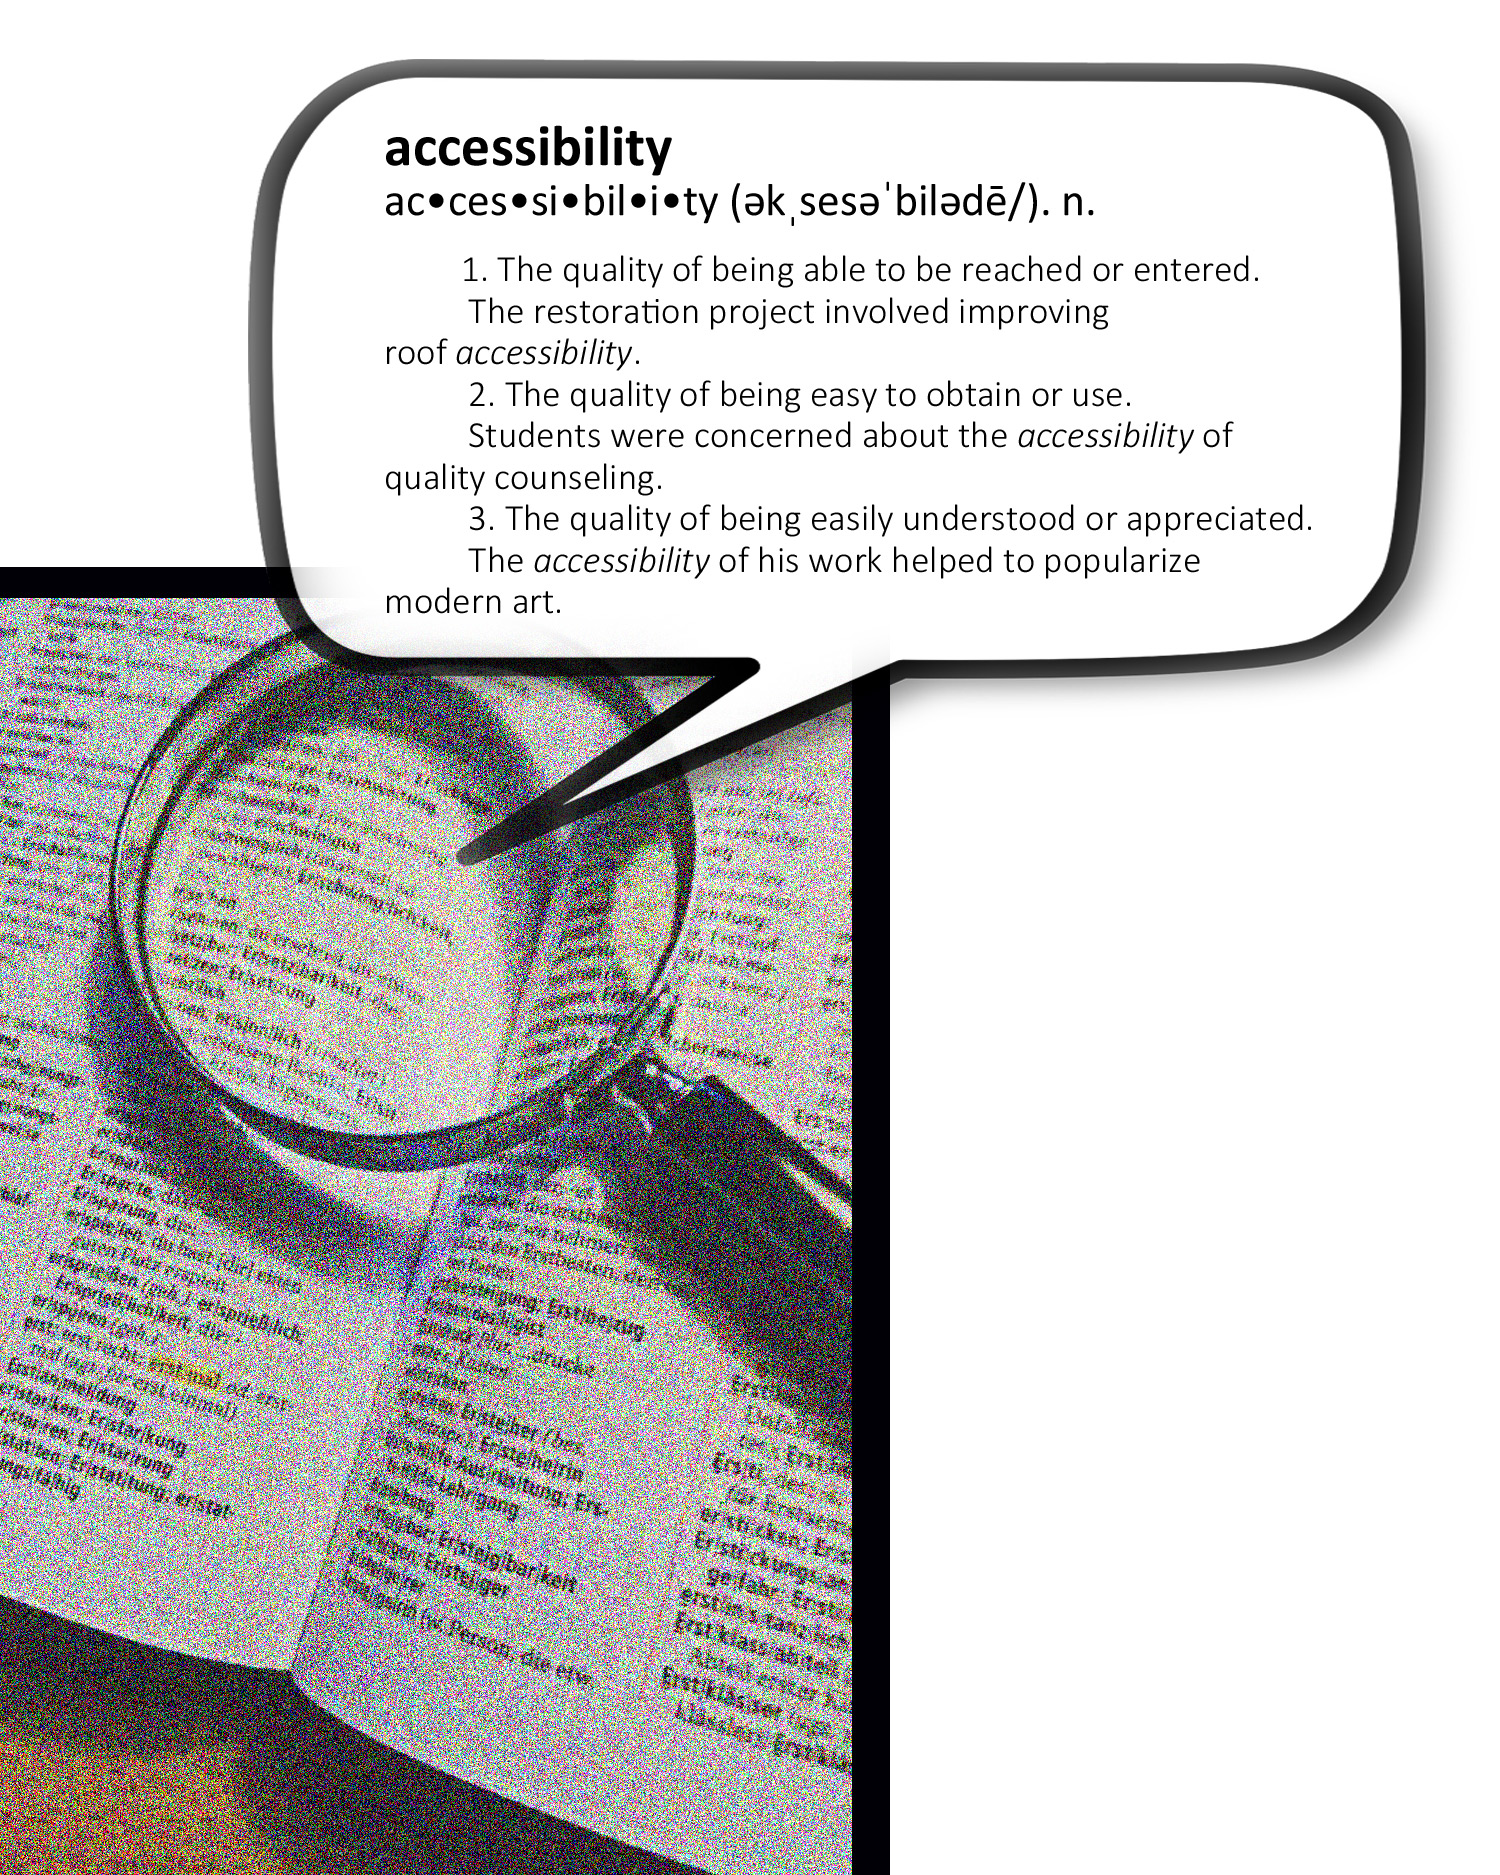 Picture of a page of an open dictionary. A magnifying glass is laid atop a portion of the page. The magnifying glass draws your attention to the word accessibility and to the definition.